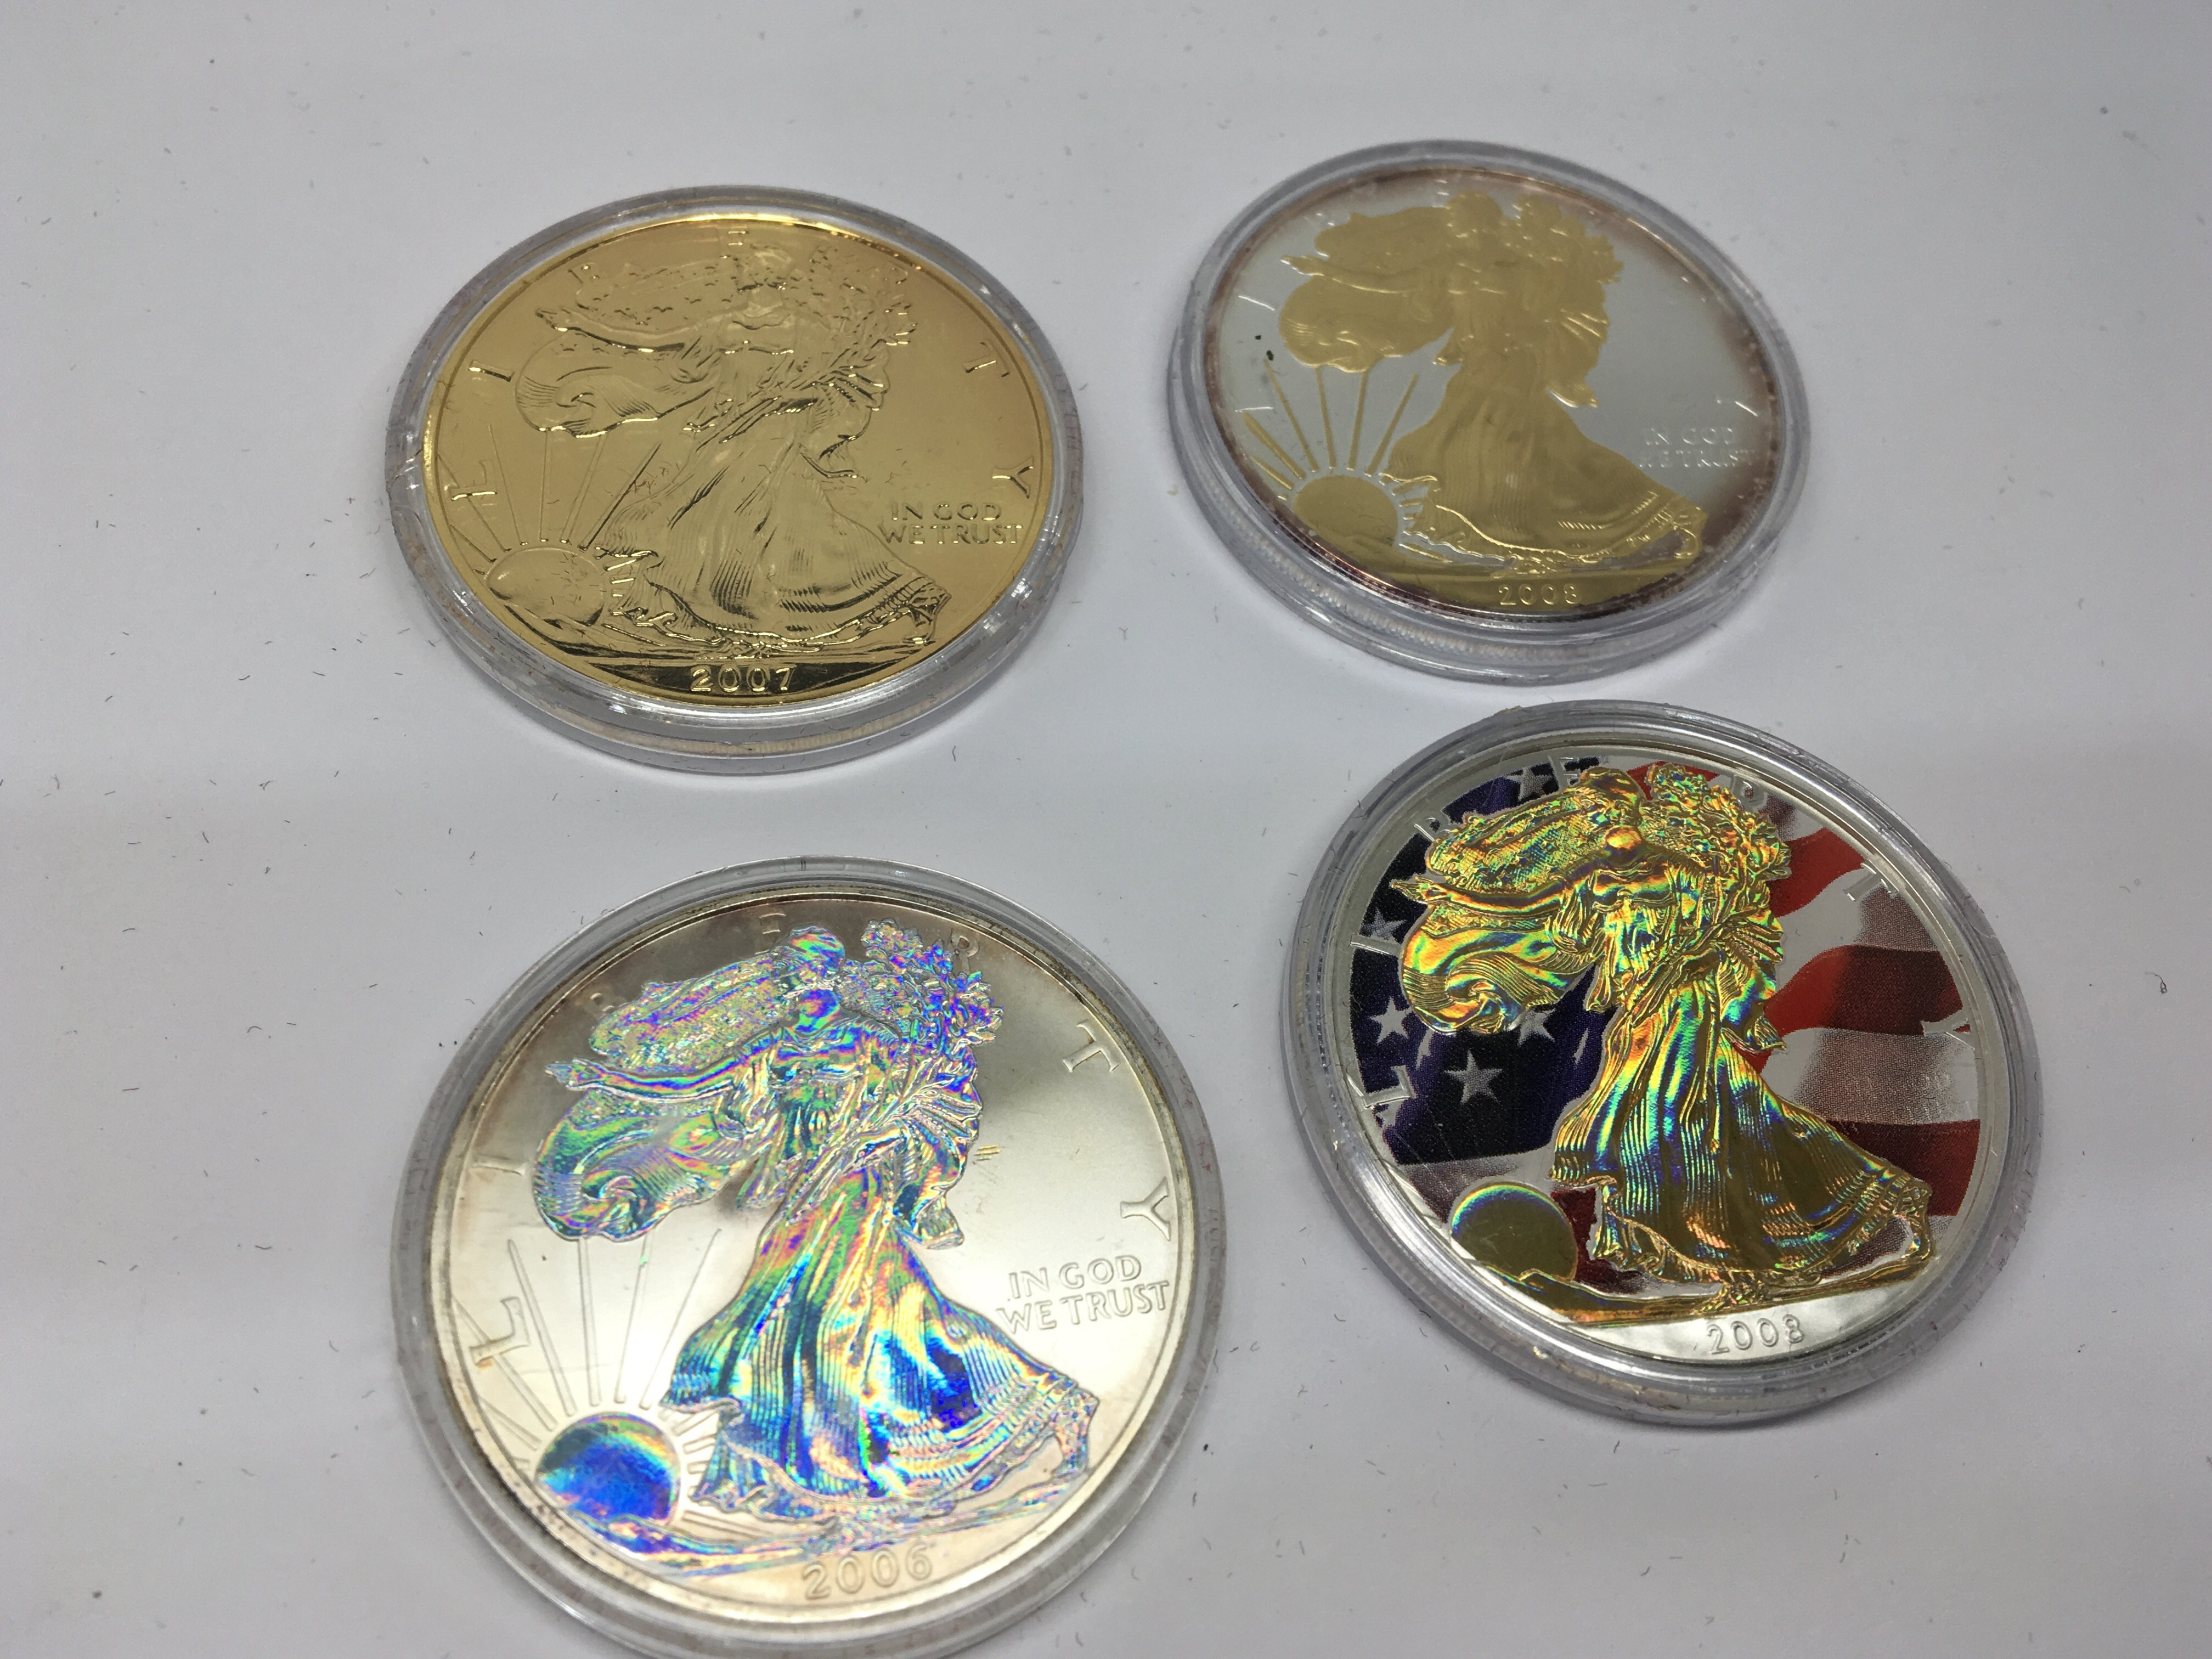 Lot 121 - A collection of four American Themed Silver Dollar